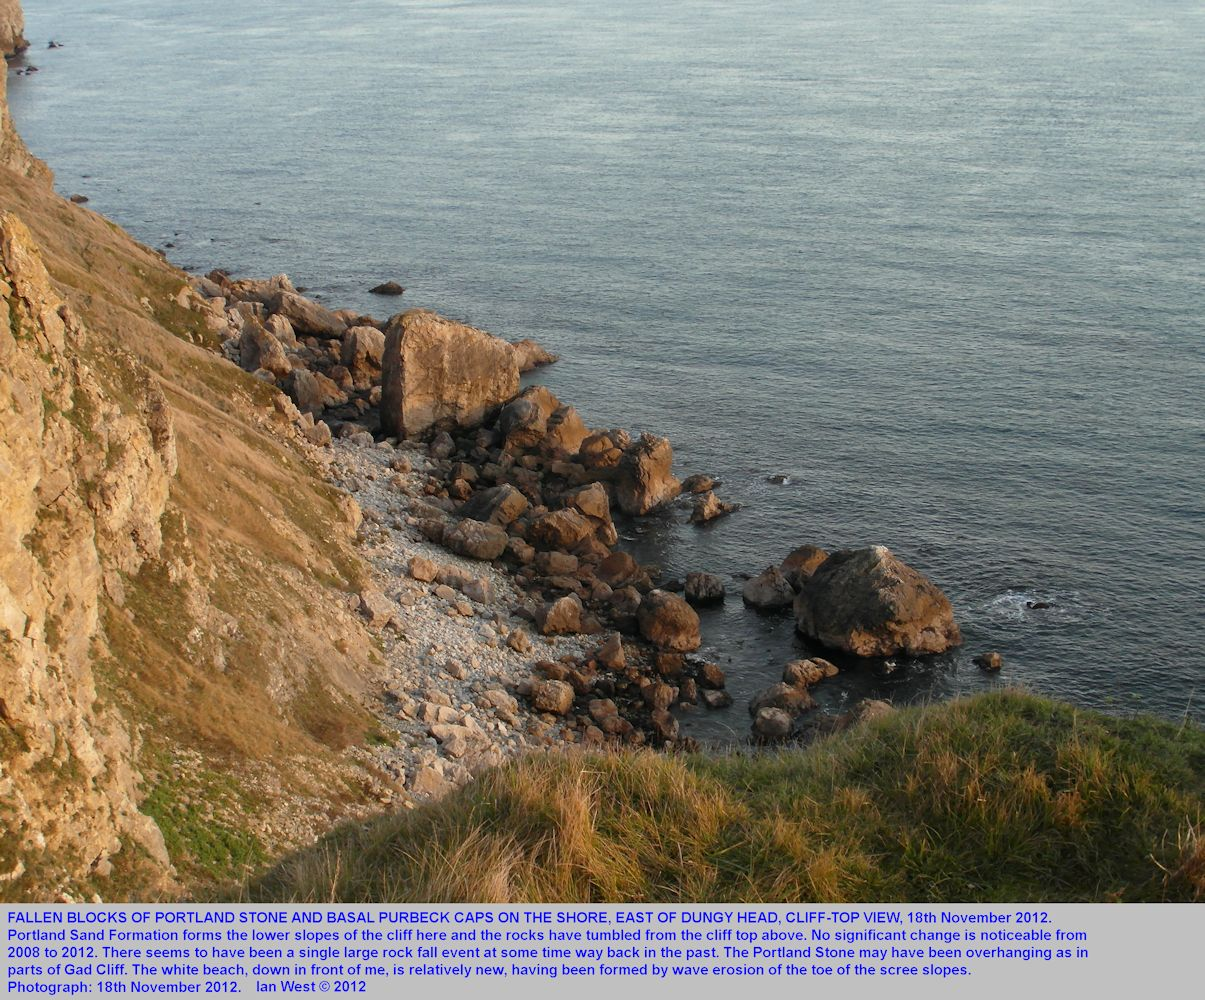 Fallen rocks east of Dungy Head, near Lulworth Cove, seen in evening light, 18th November 2012